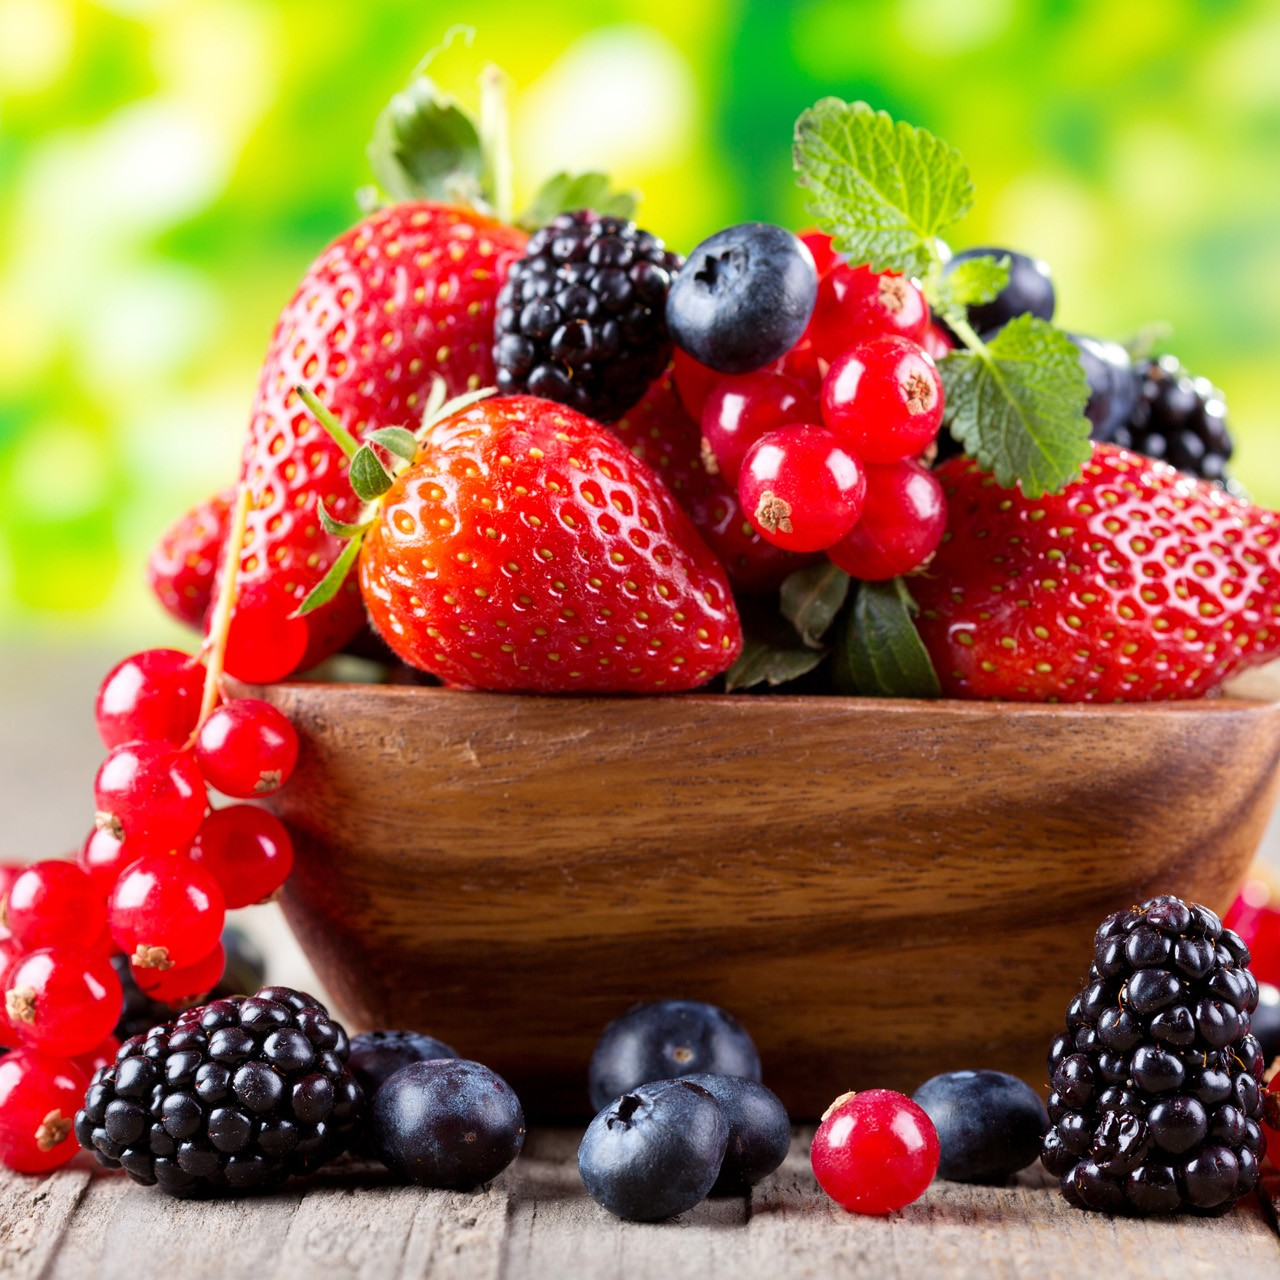 berries-wallpaper-3-small